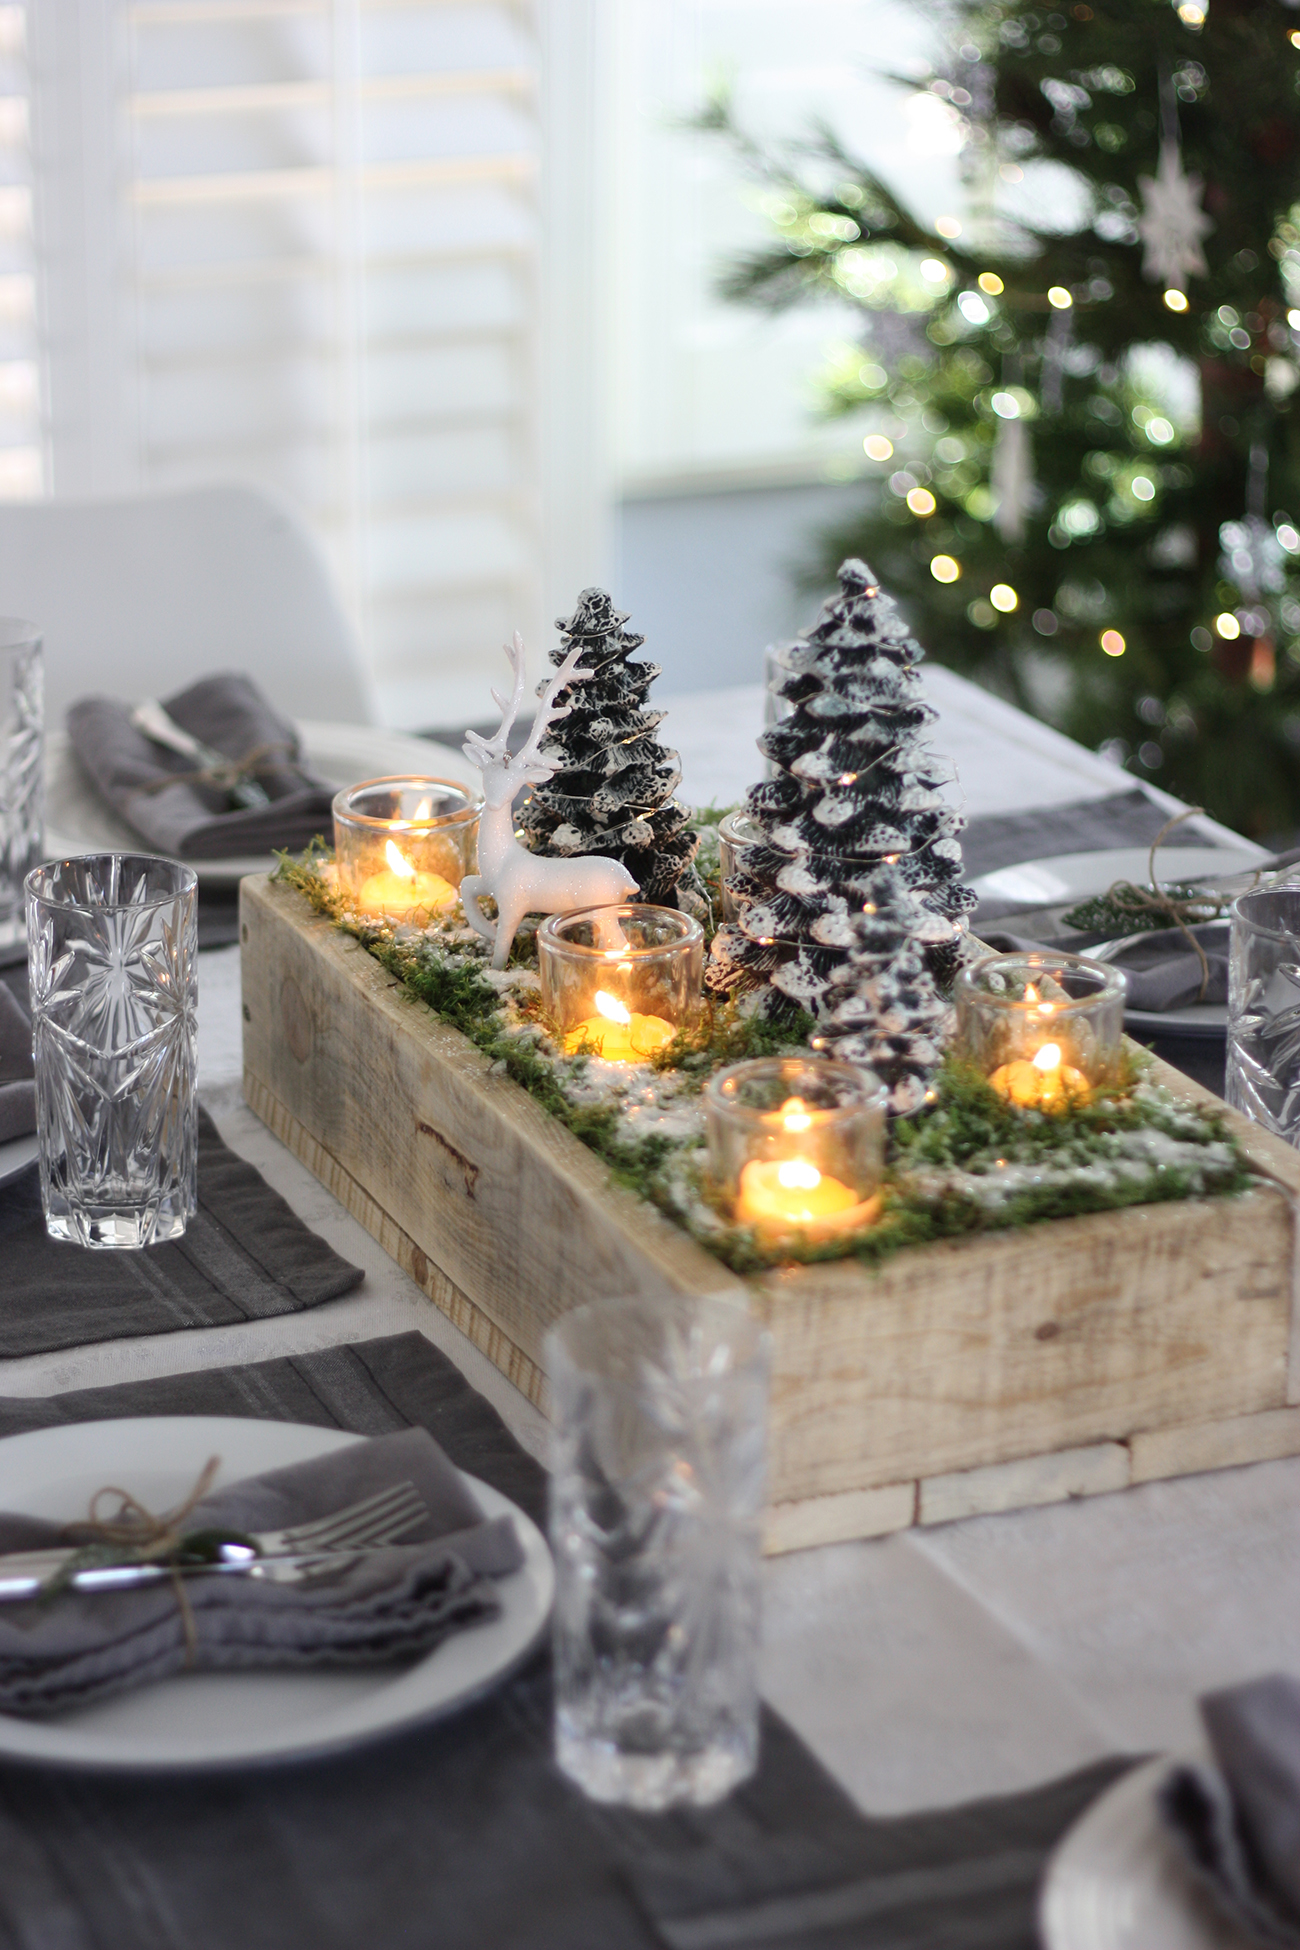 DIY Christmas Table Centerpiece The Spunky Coconut